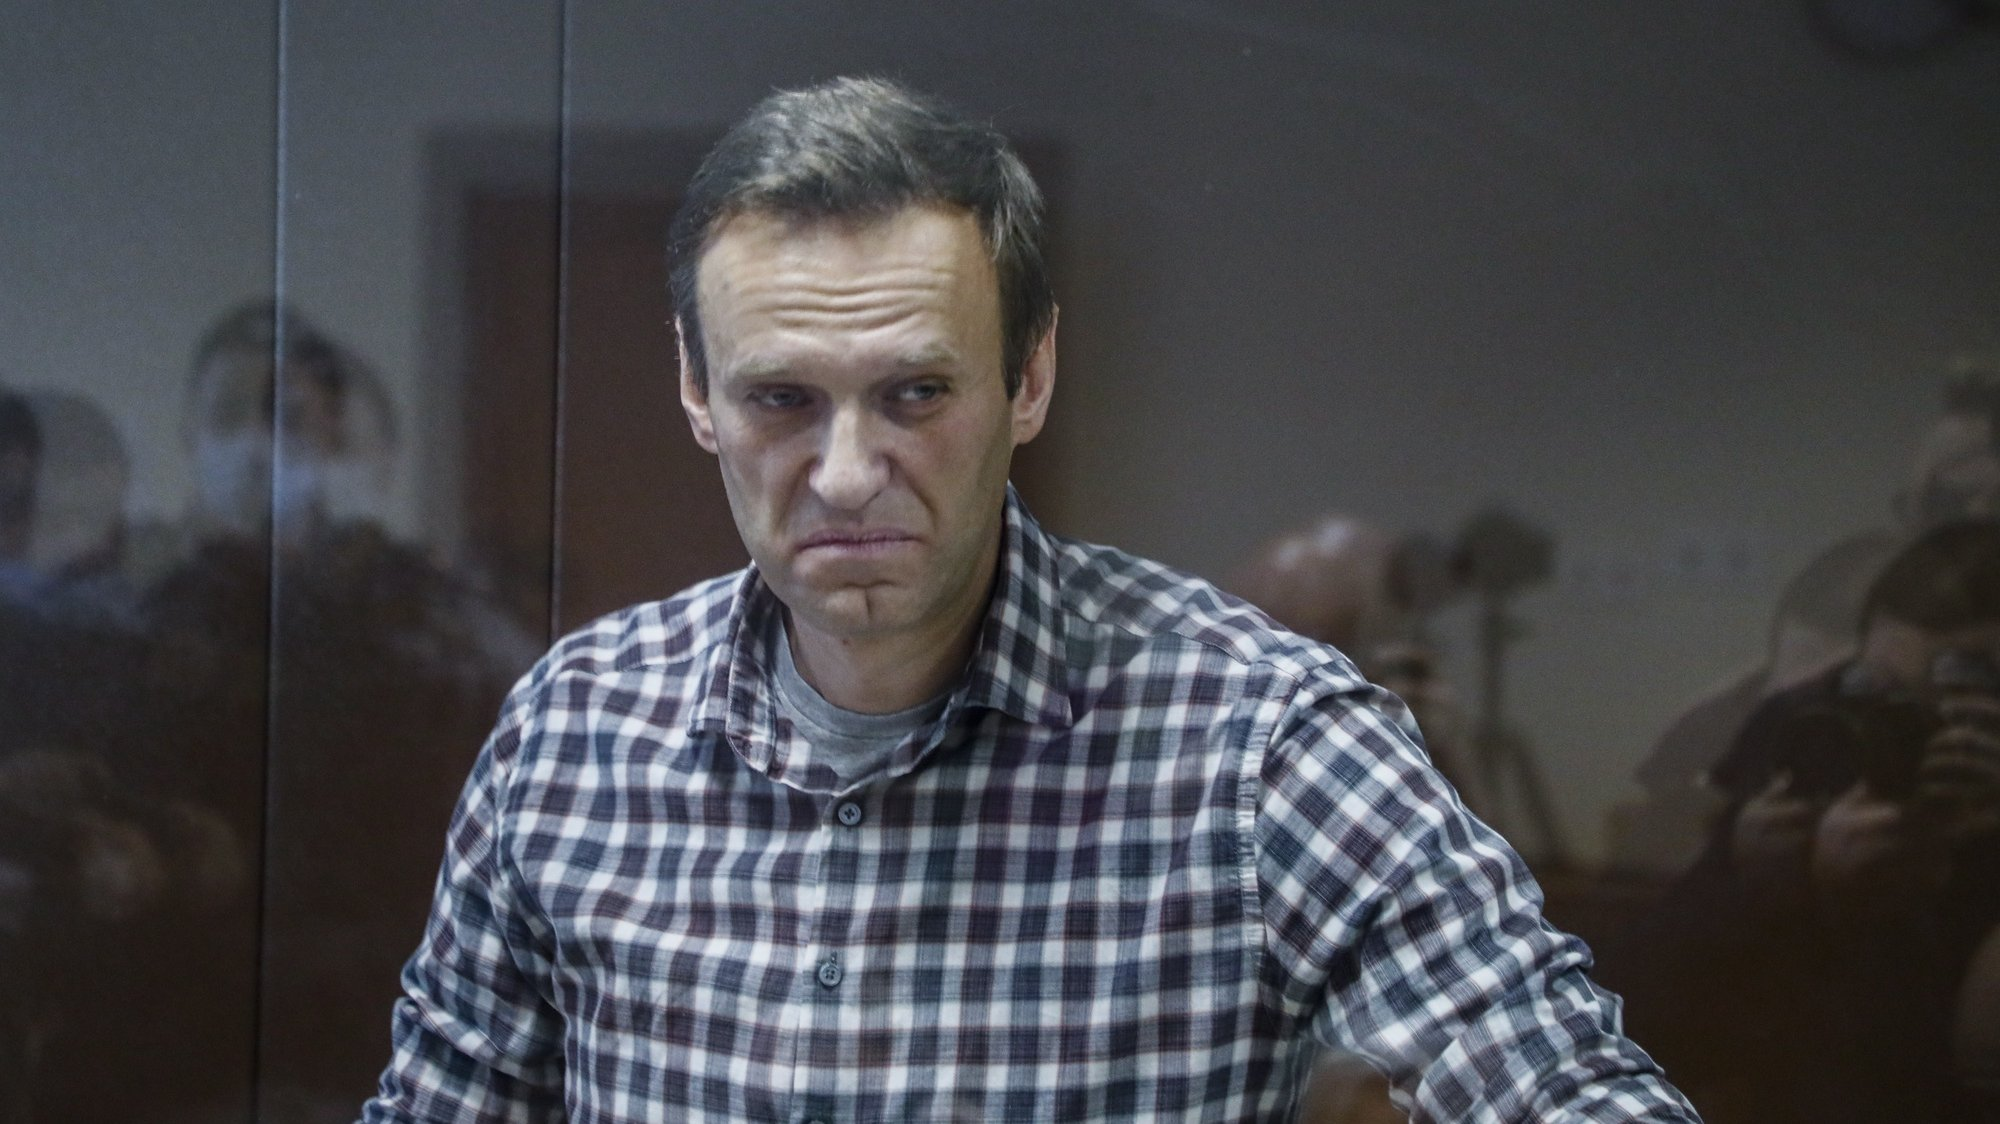 epa09025232 Russian opposition leader Alexei Navalny stands inside a glass cage prior to a hearing at the Babushkinsky District Court in Moscow, Russia, 20 February 2021. The Moscow City court will hold a visiting session at the Babushkinsky District Court Building to consider Navalny's lawyers appeal against a court verdict issued on 02 February 2021, to replace the suspended sentence issued to Navalny in the Yves Rocher embezzlement case with an actual term in a penal colony.  EPA/YURI KOCHETKOV MANDATORY CREDIT